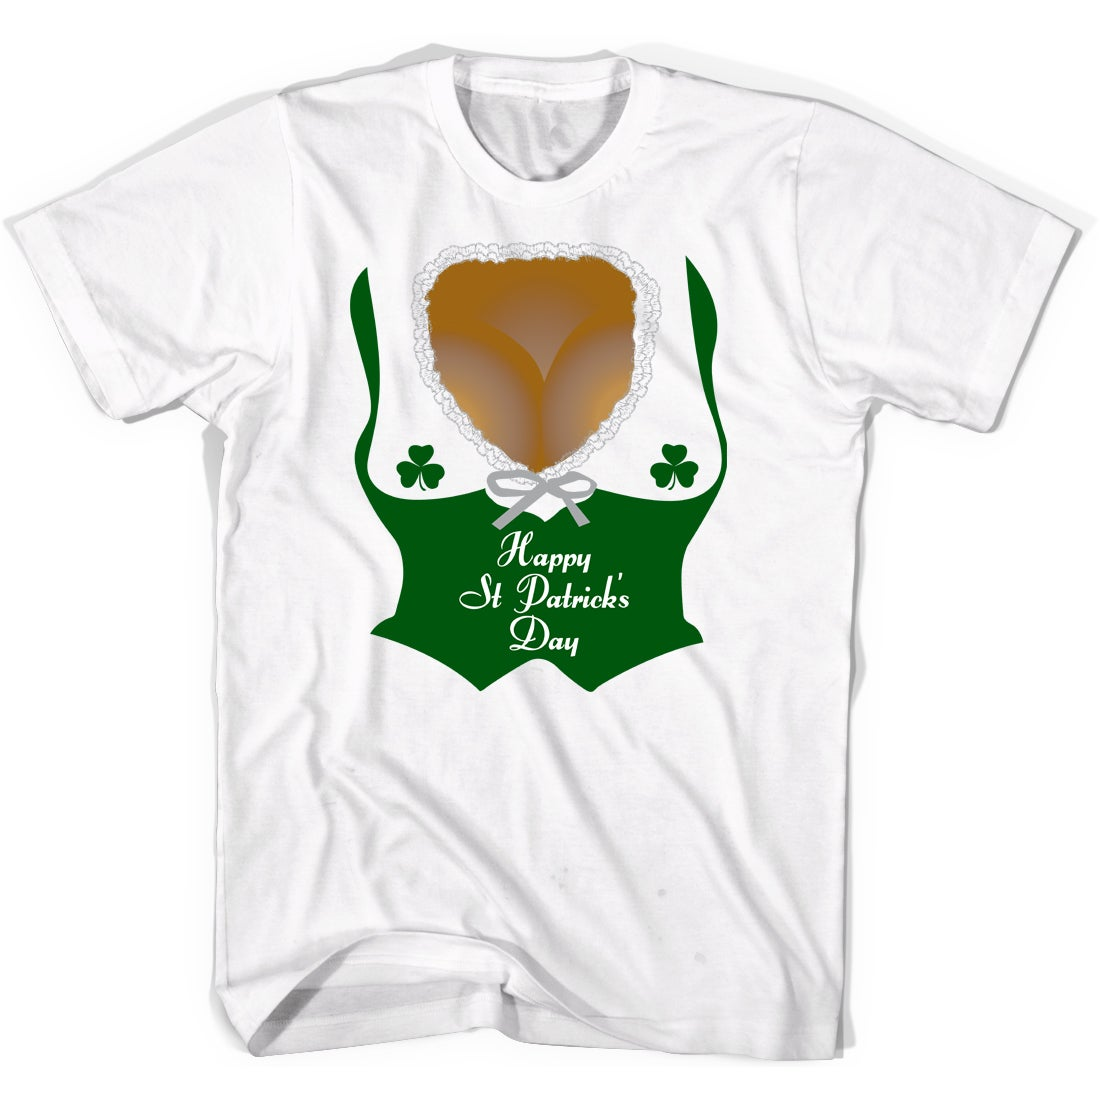 76f882532 Shop Mens Irish Barmaid Clevage T-shirt Funny St Patricks Day Shirts for  Guys - Free Shipping On Orders Over $45 - Overstock - 16183526